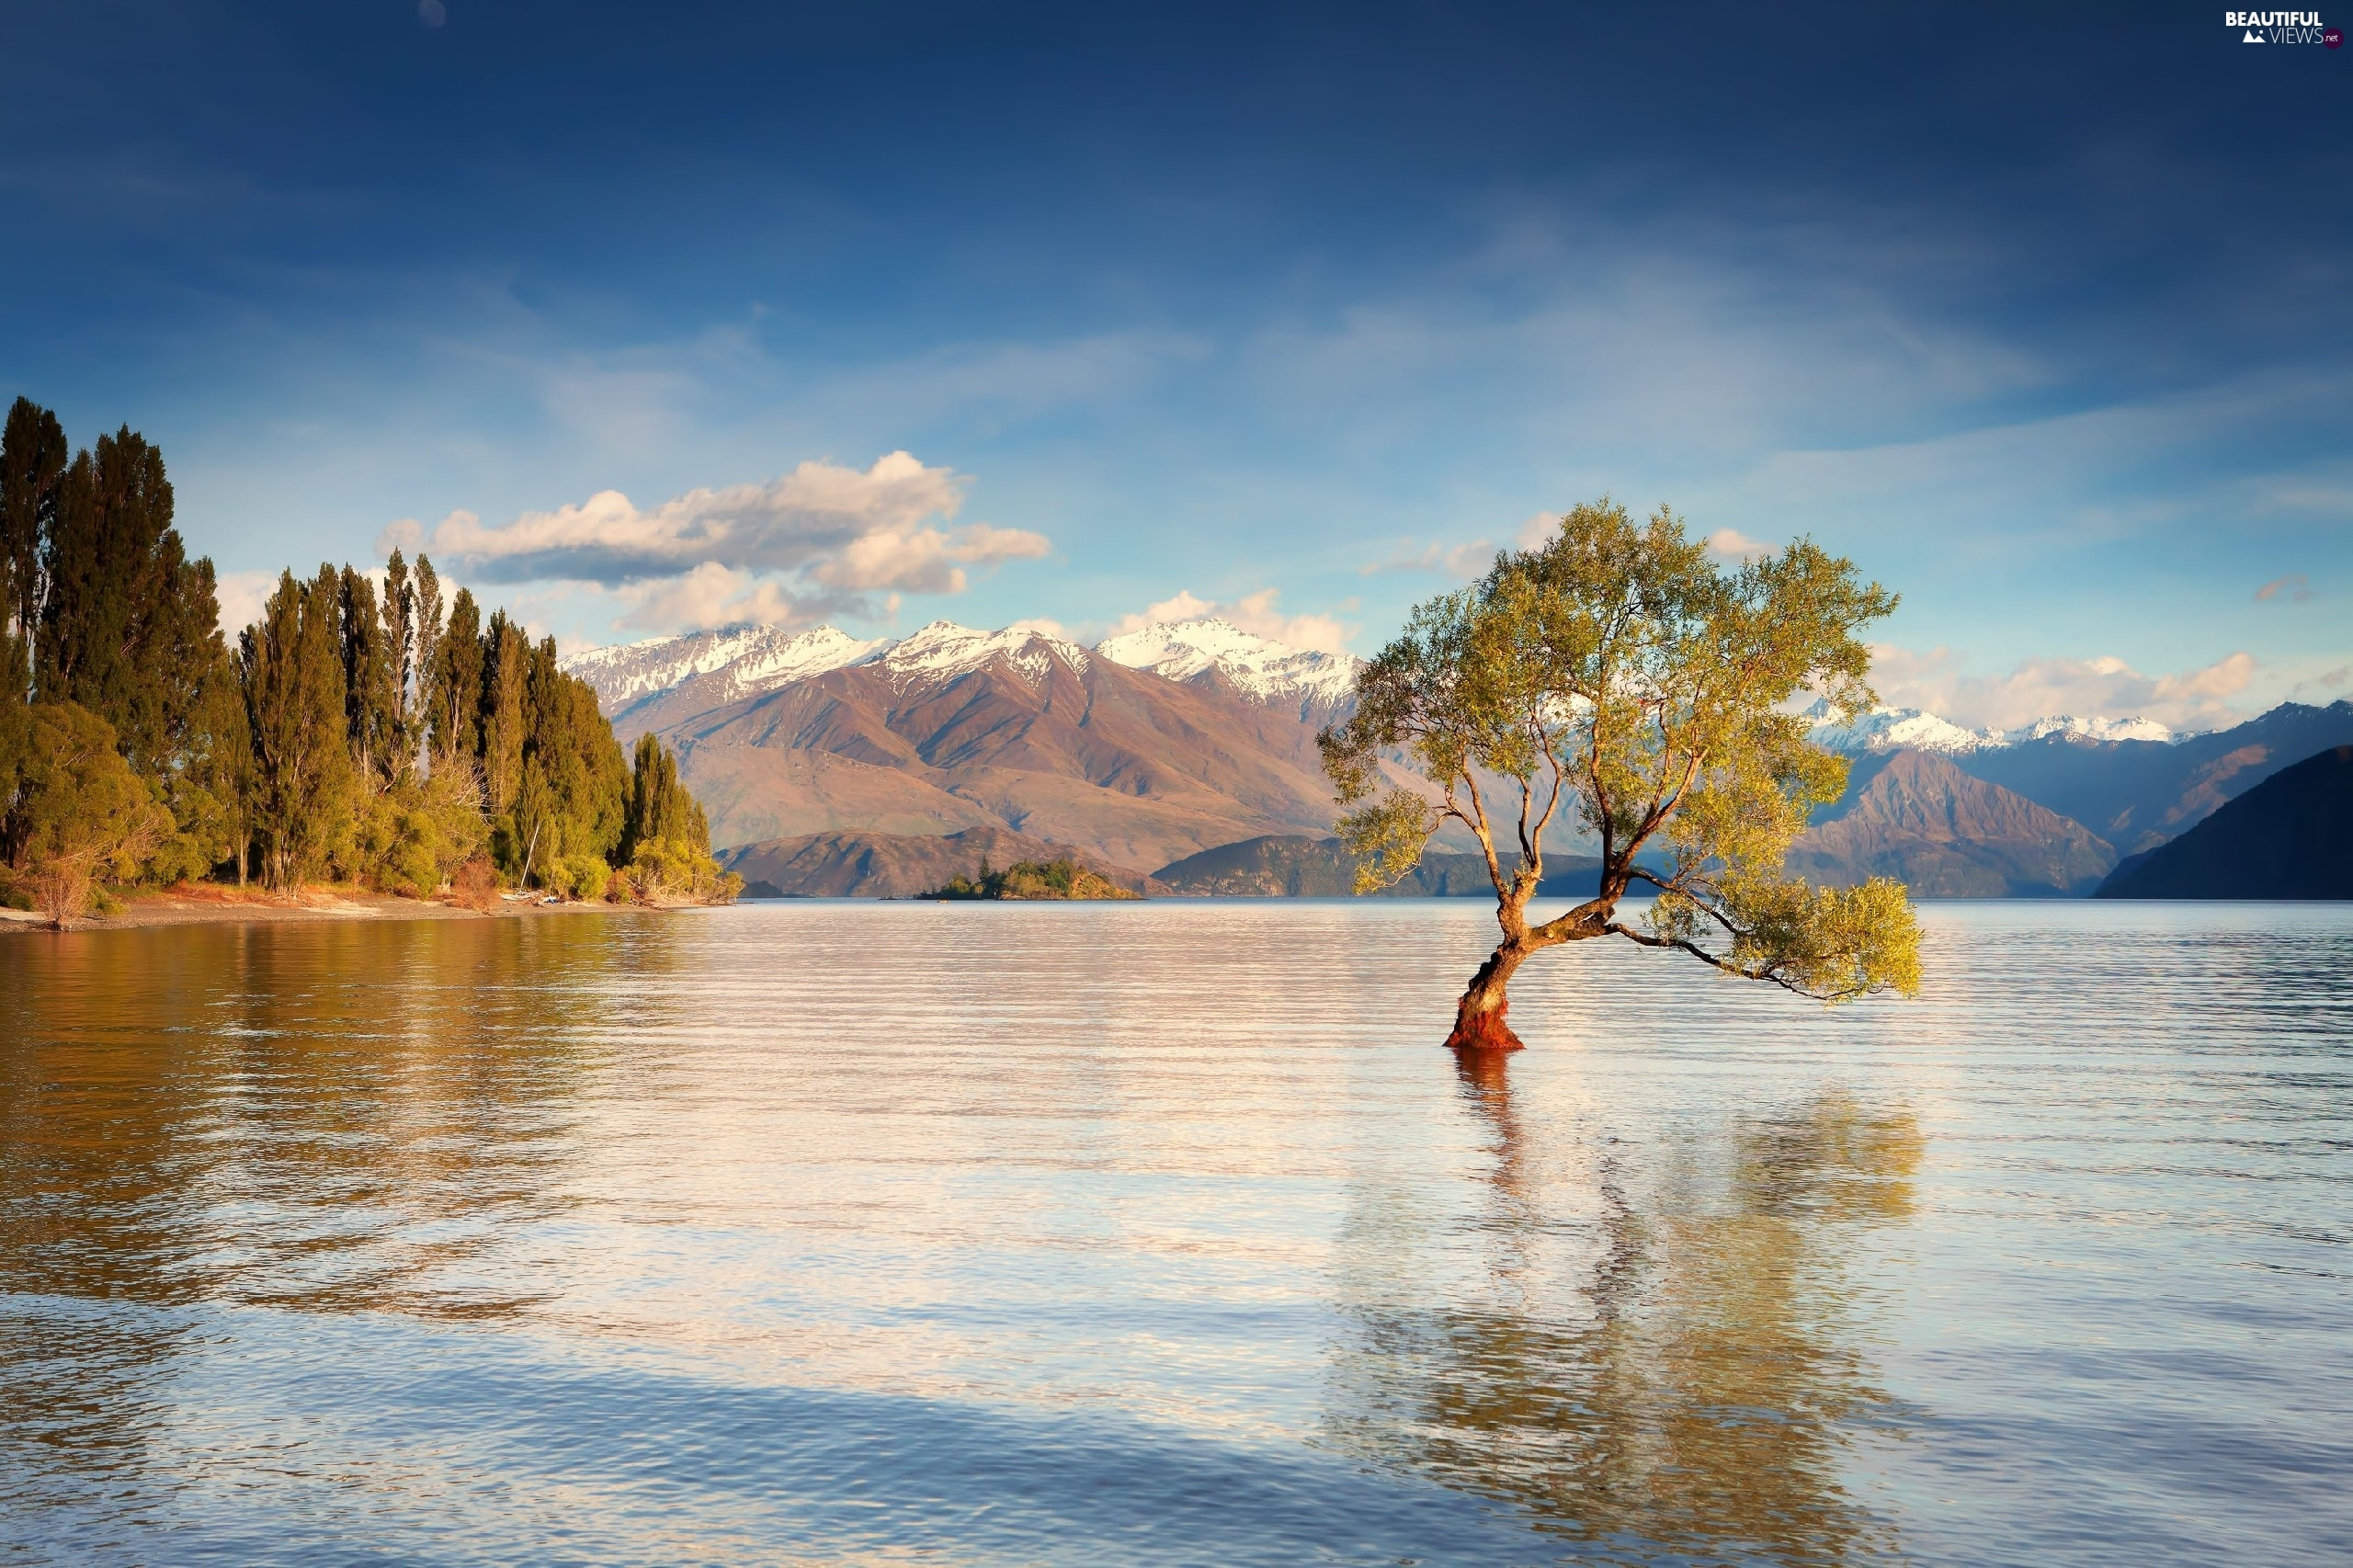 lake, viewes, Mountains, trees